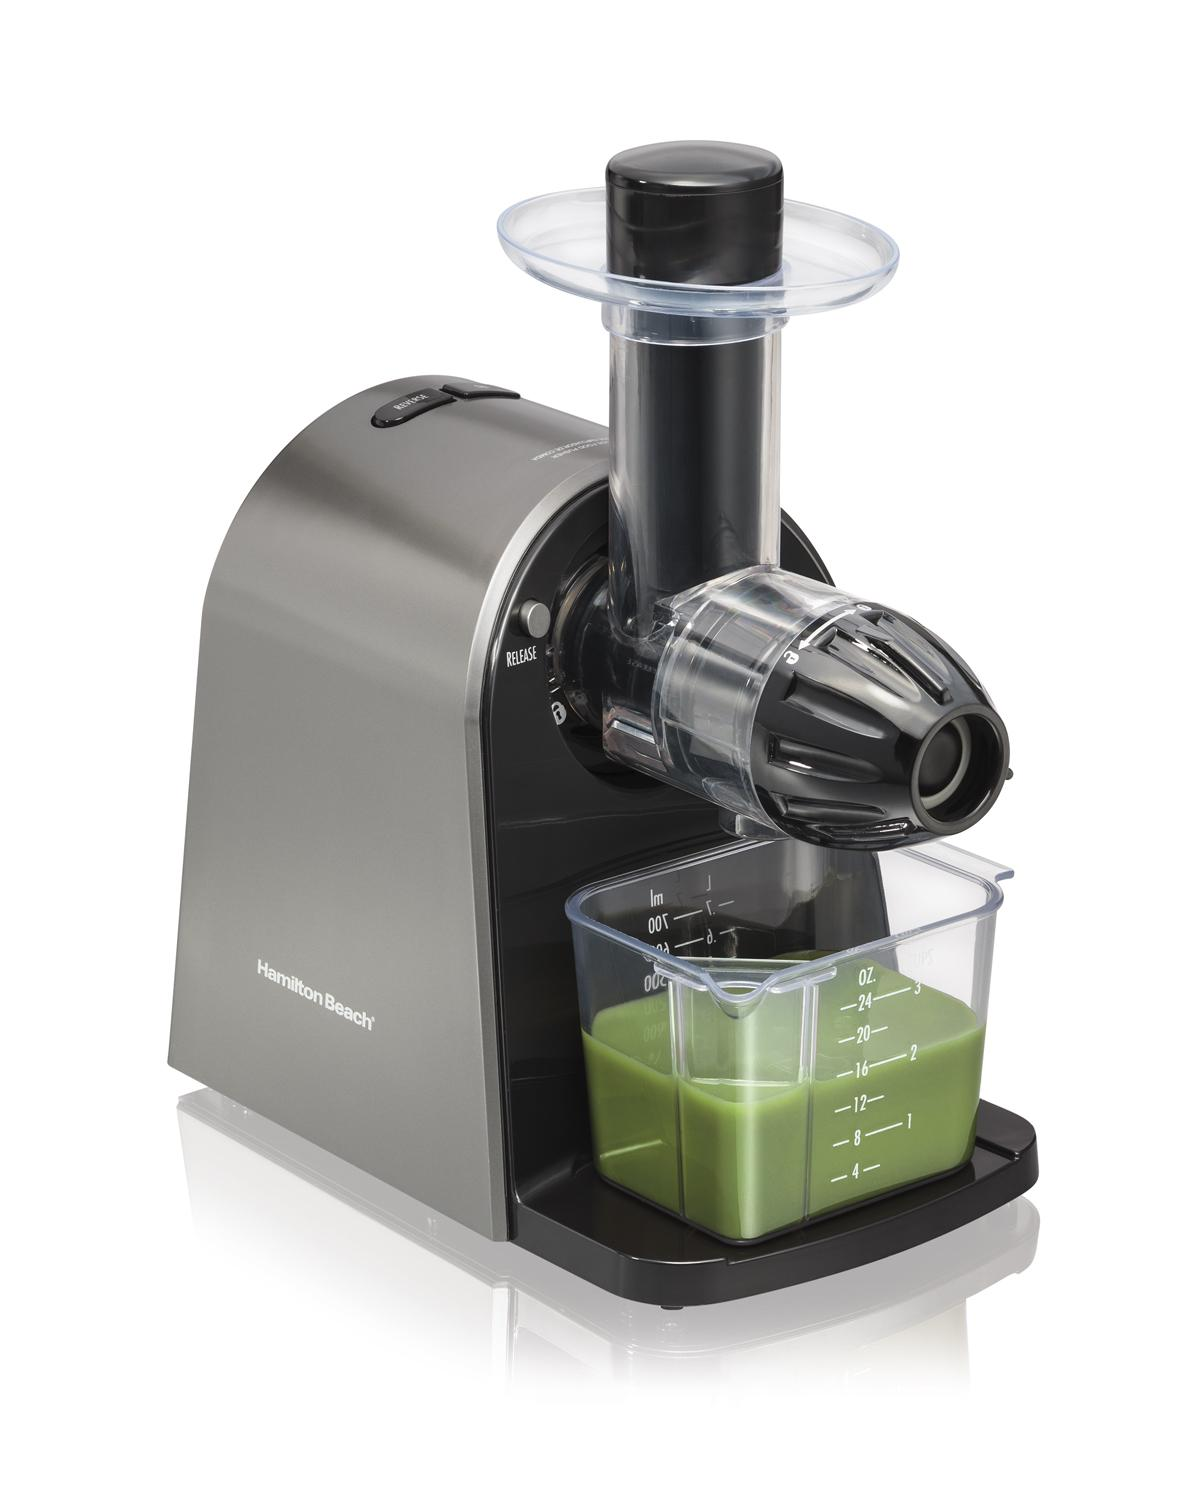 Tarrington House Slow Juicer Review : juicer breville commercial cuisinart omega extractor slow juicers electric vegetable masticating